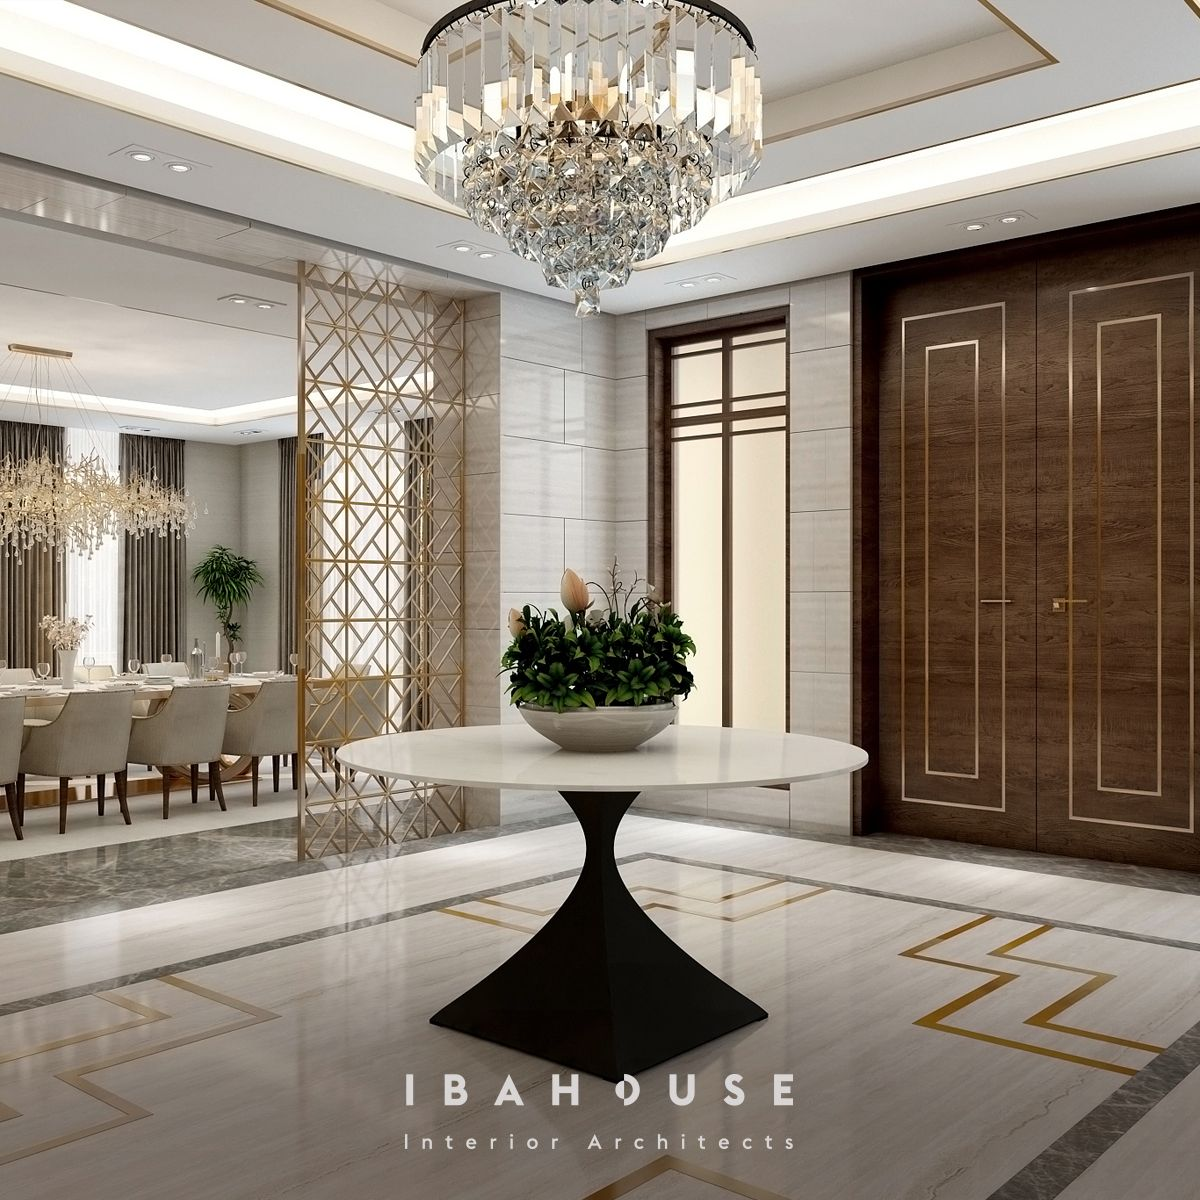 First Impression Matters But A Classy Villa S Entrance Has The Final Word Luxurydesigns أ House Ceiling Design Lobby Interior Design Interior Architect